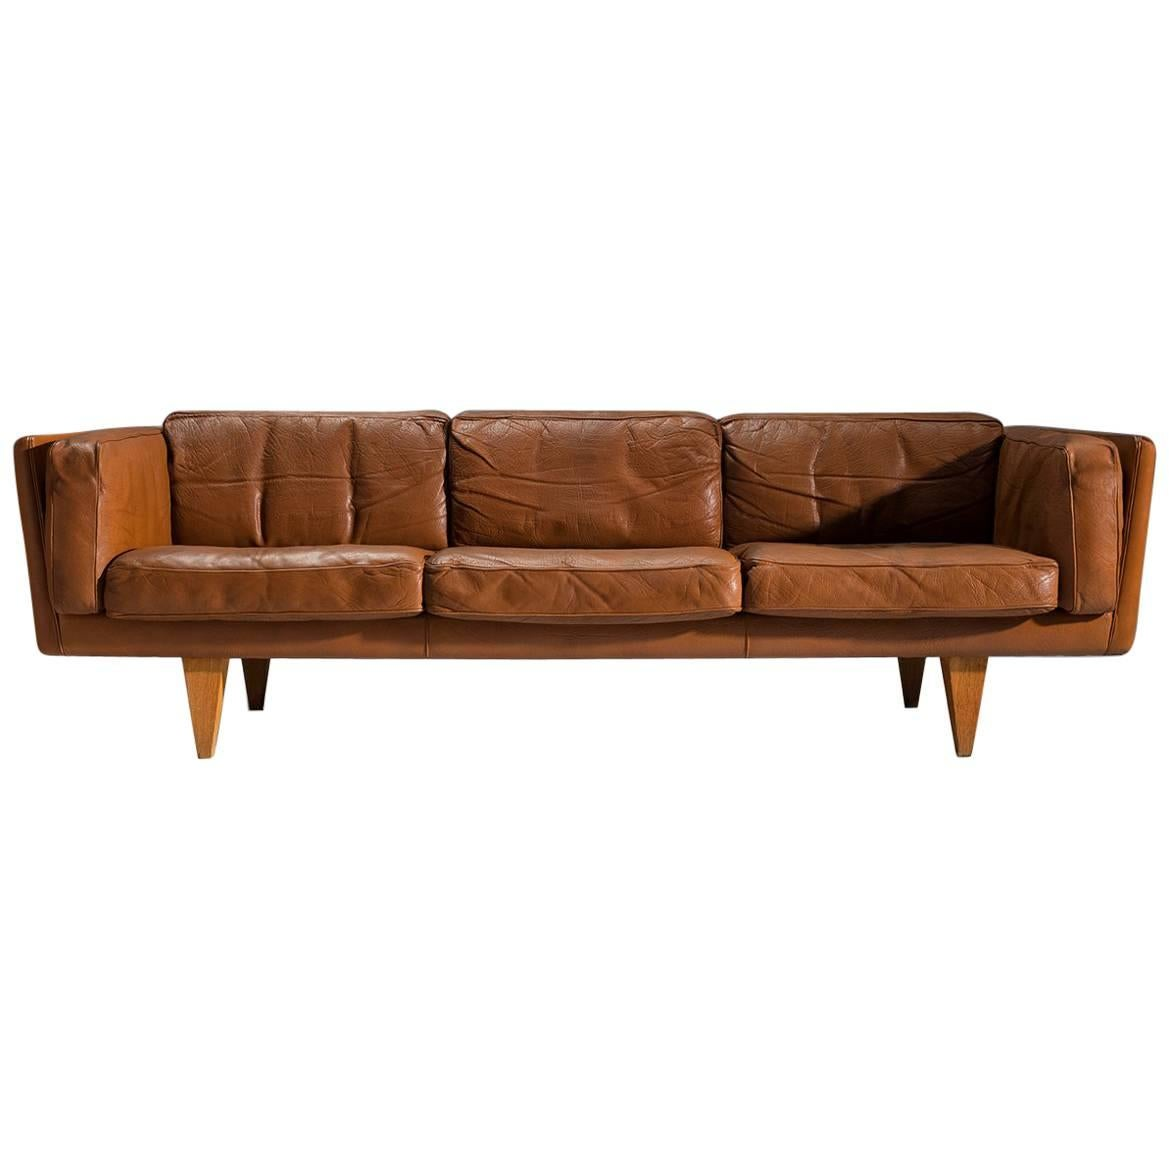 Illum Wikkelsø Restored Three Seat Sofa In Cognac Leather For Sale